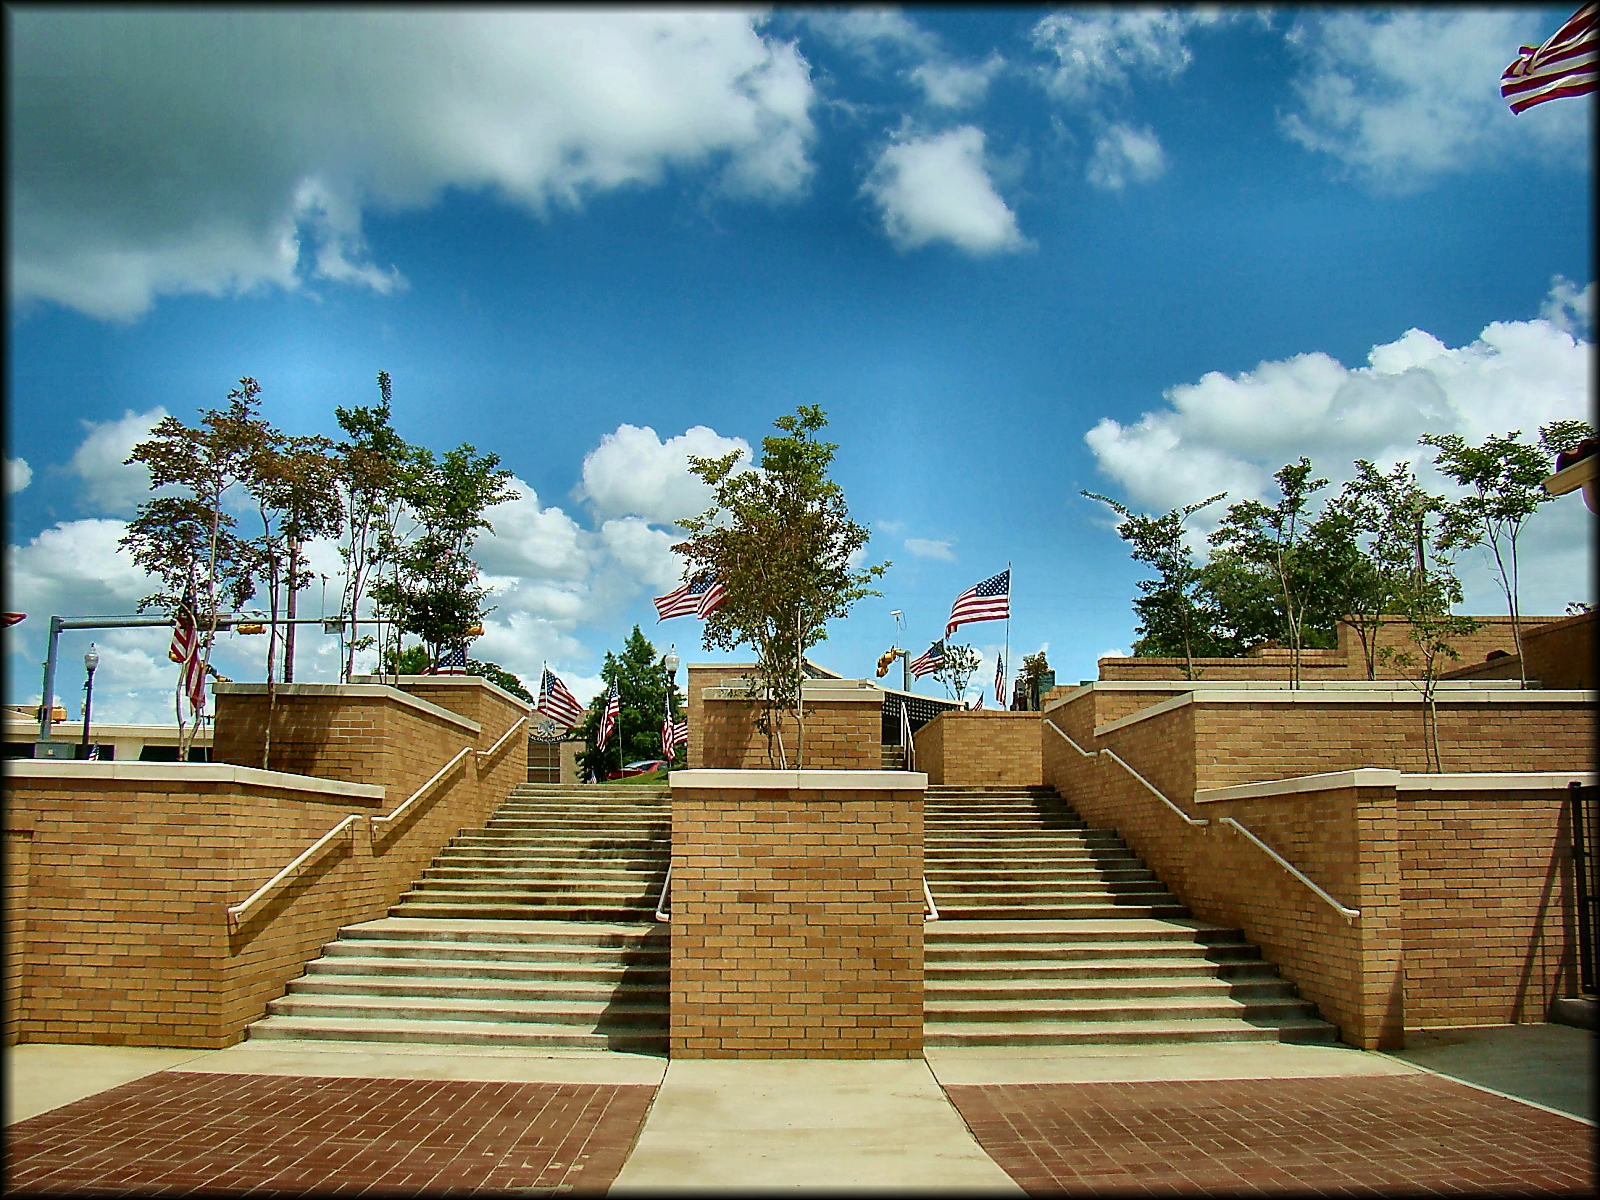 Walkway to the Memorial Wall at Nacogdoches County Courthouse